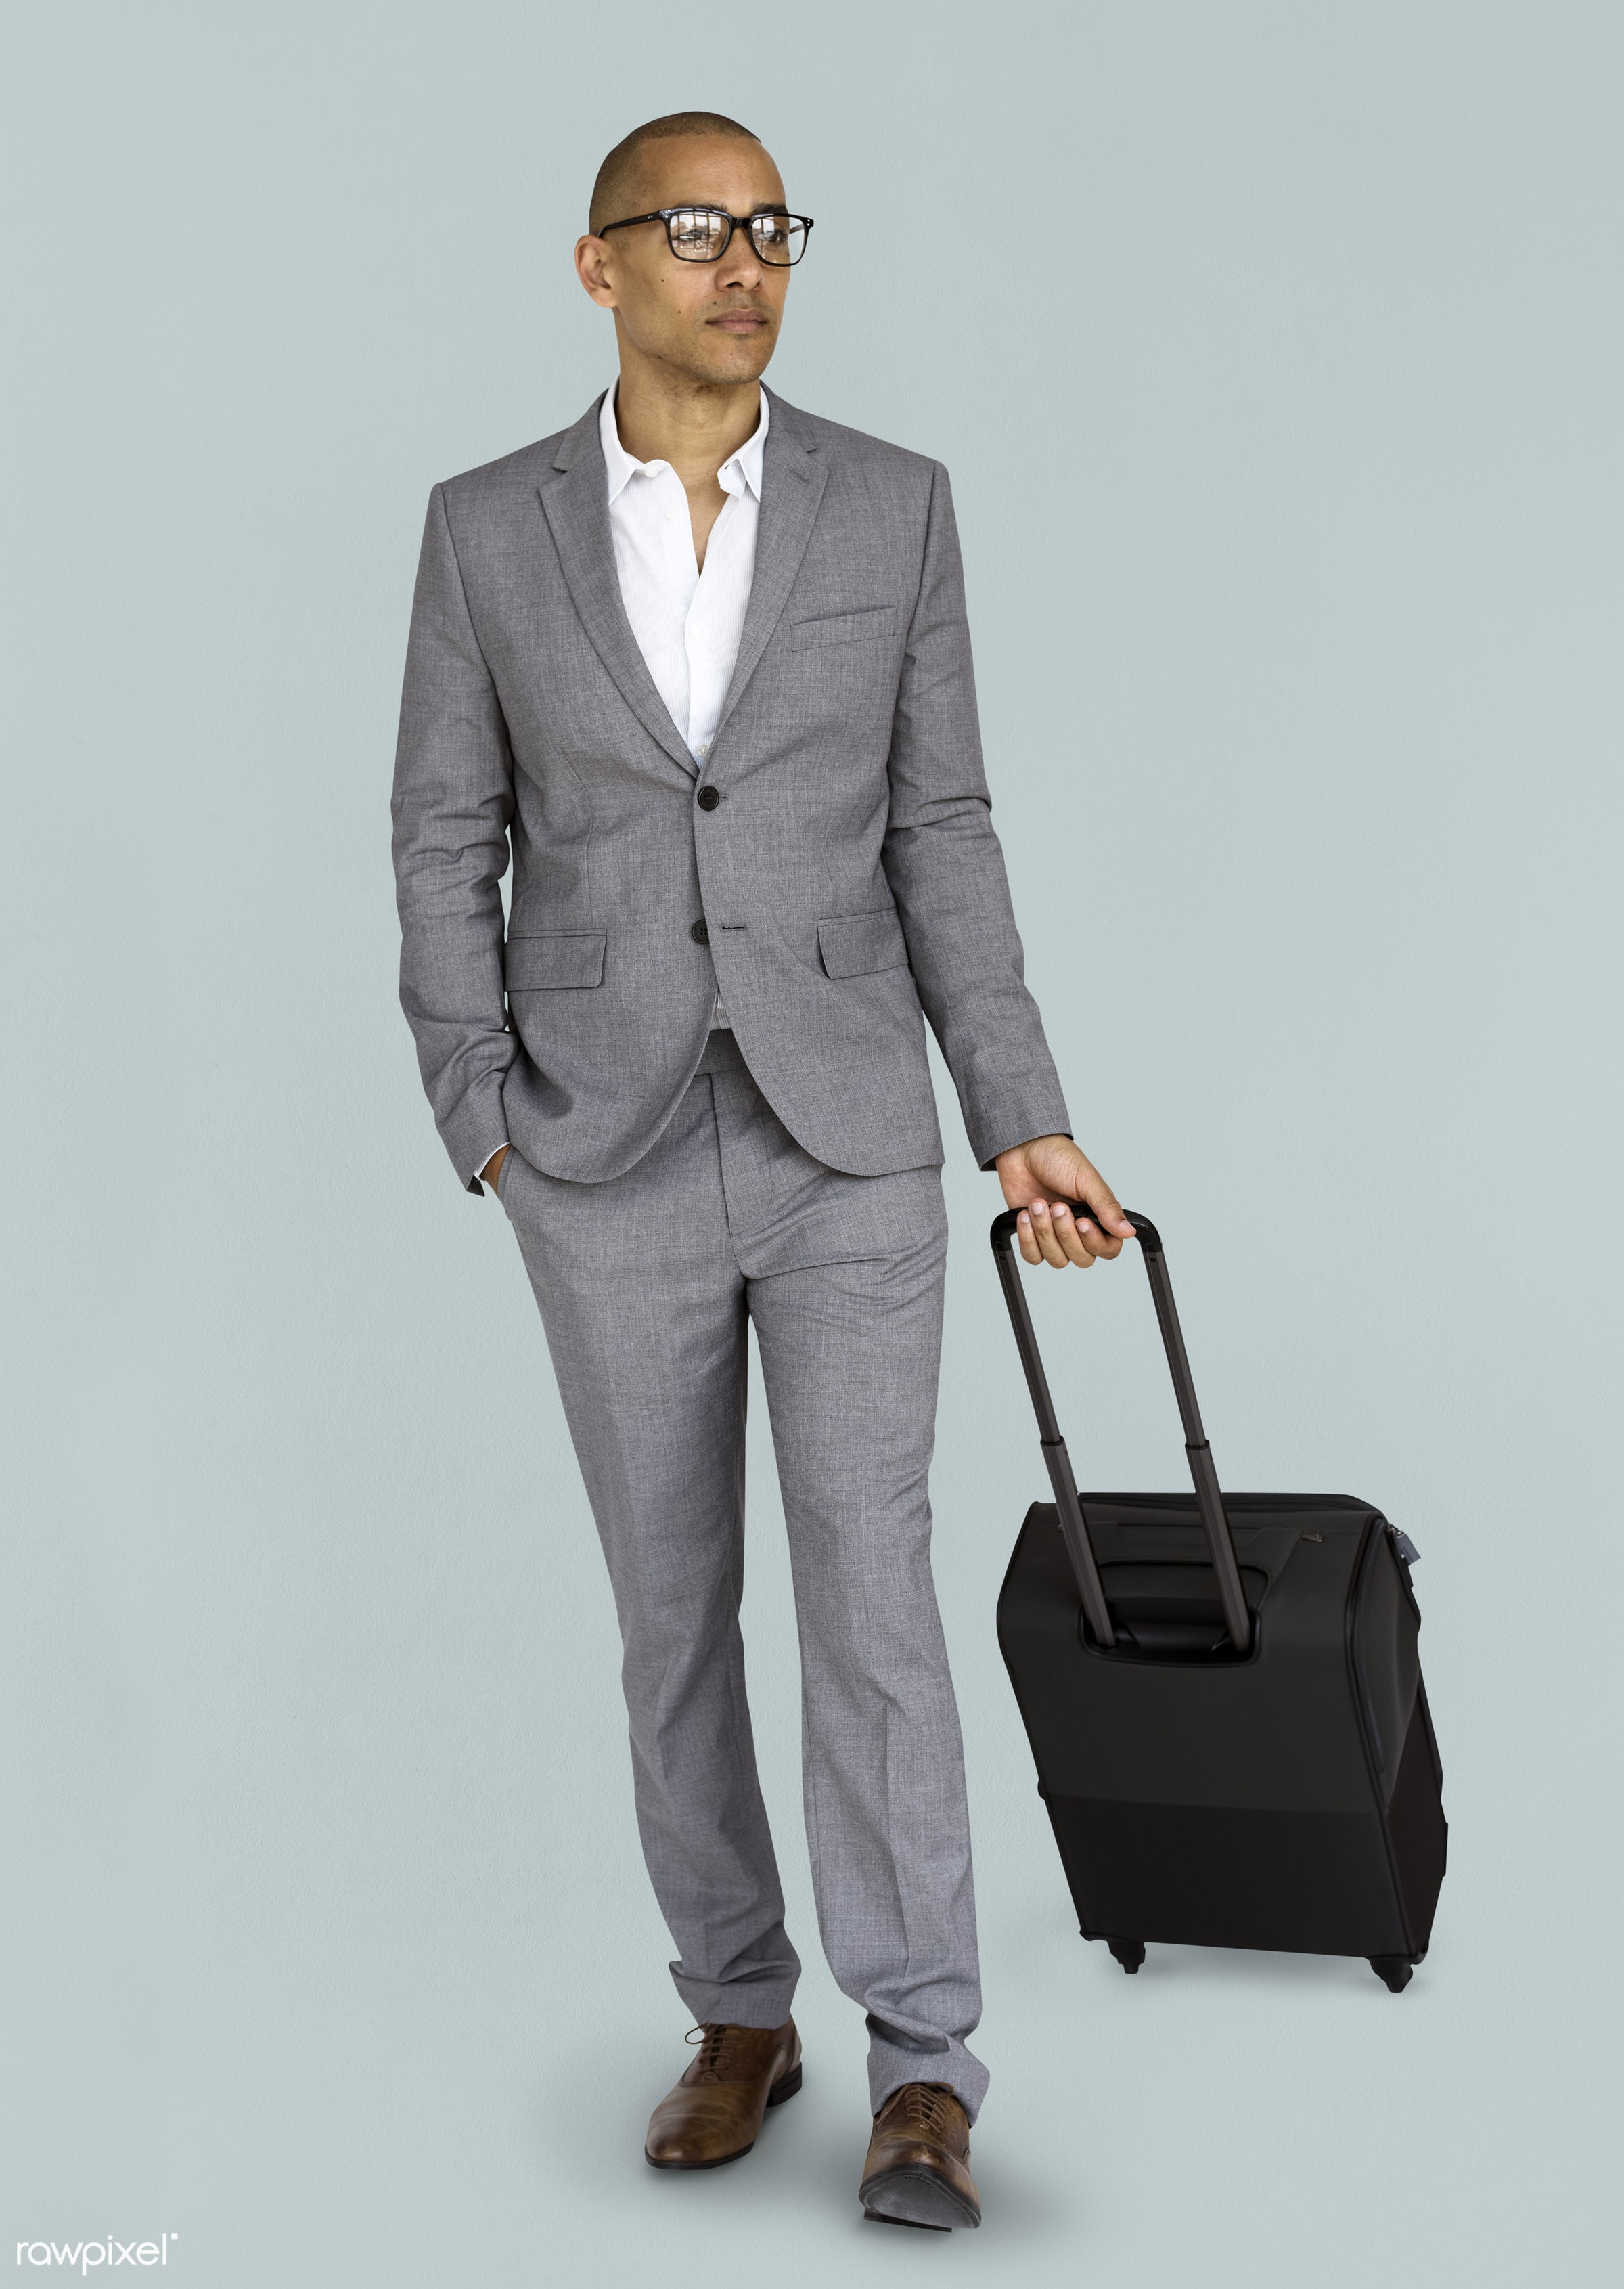 studio, face, person, glasses, travel, people, business, businessman, grey, trip, man, isolated, suitcase, male, traveler,...